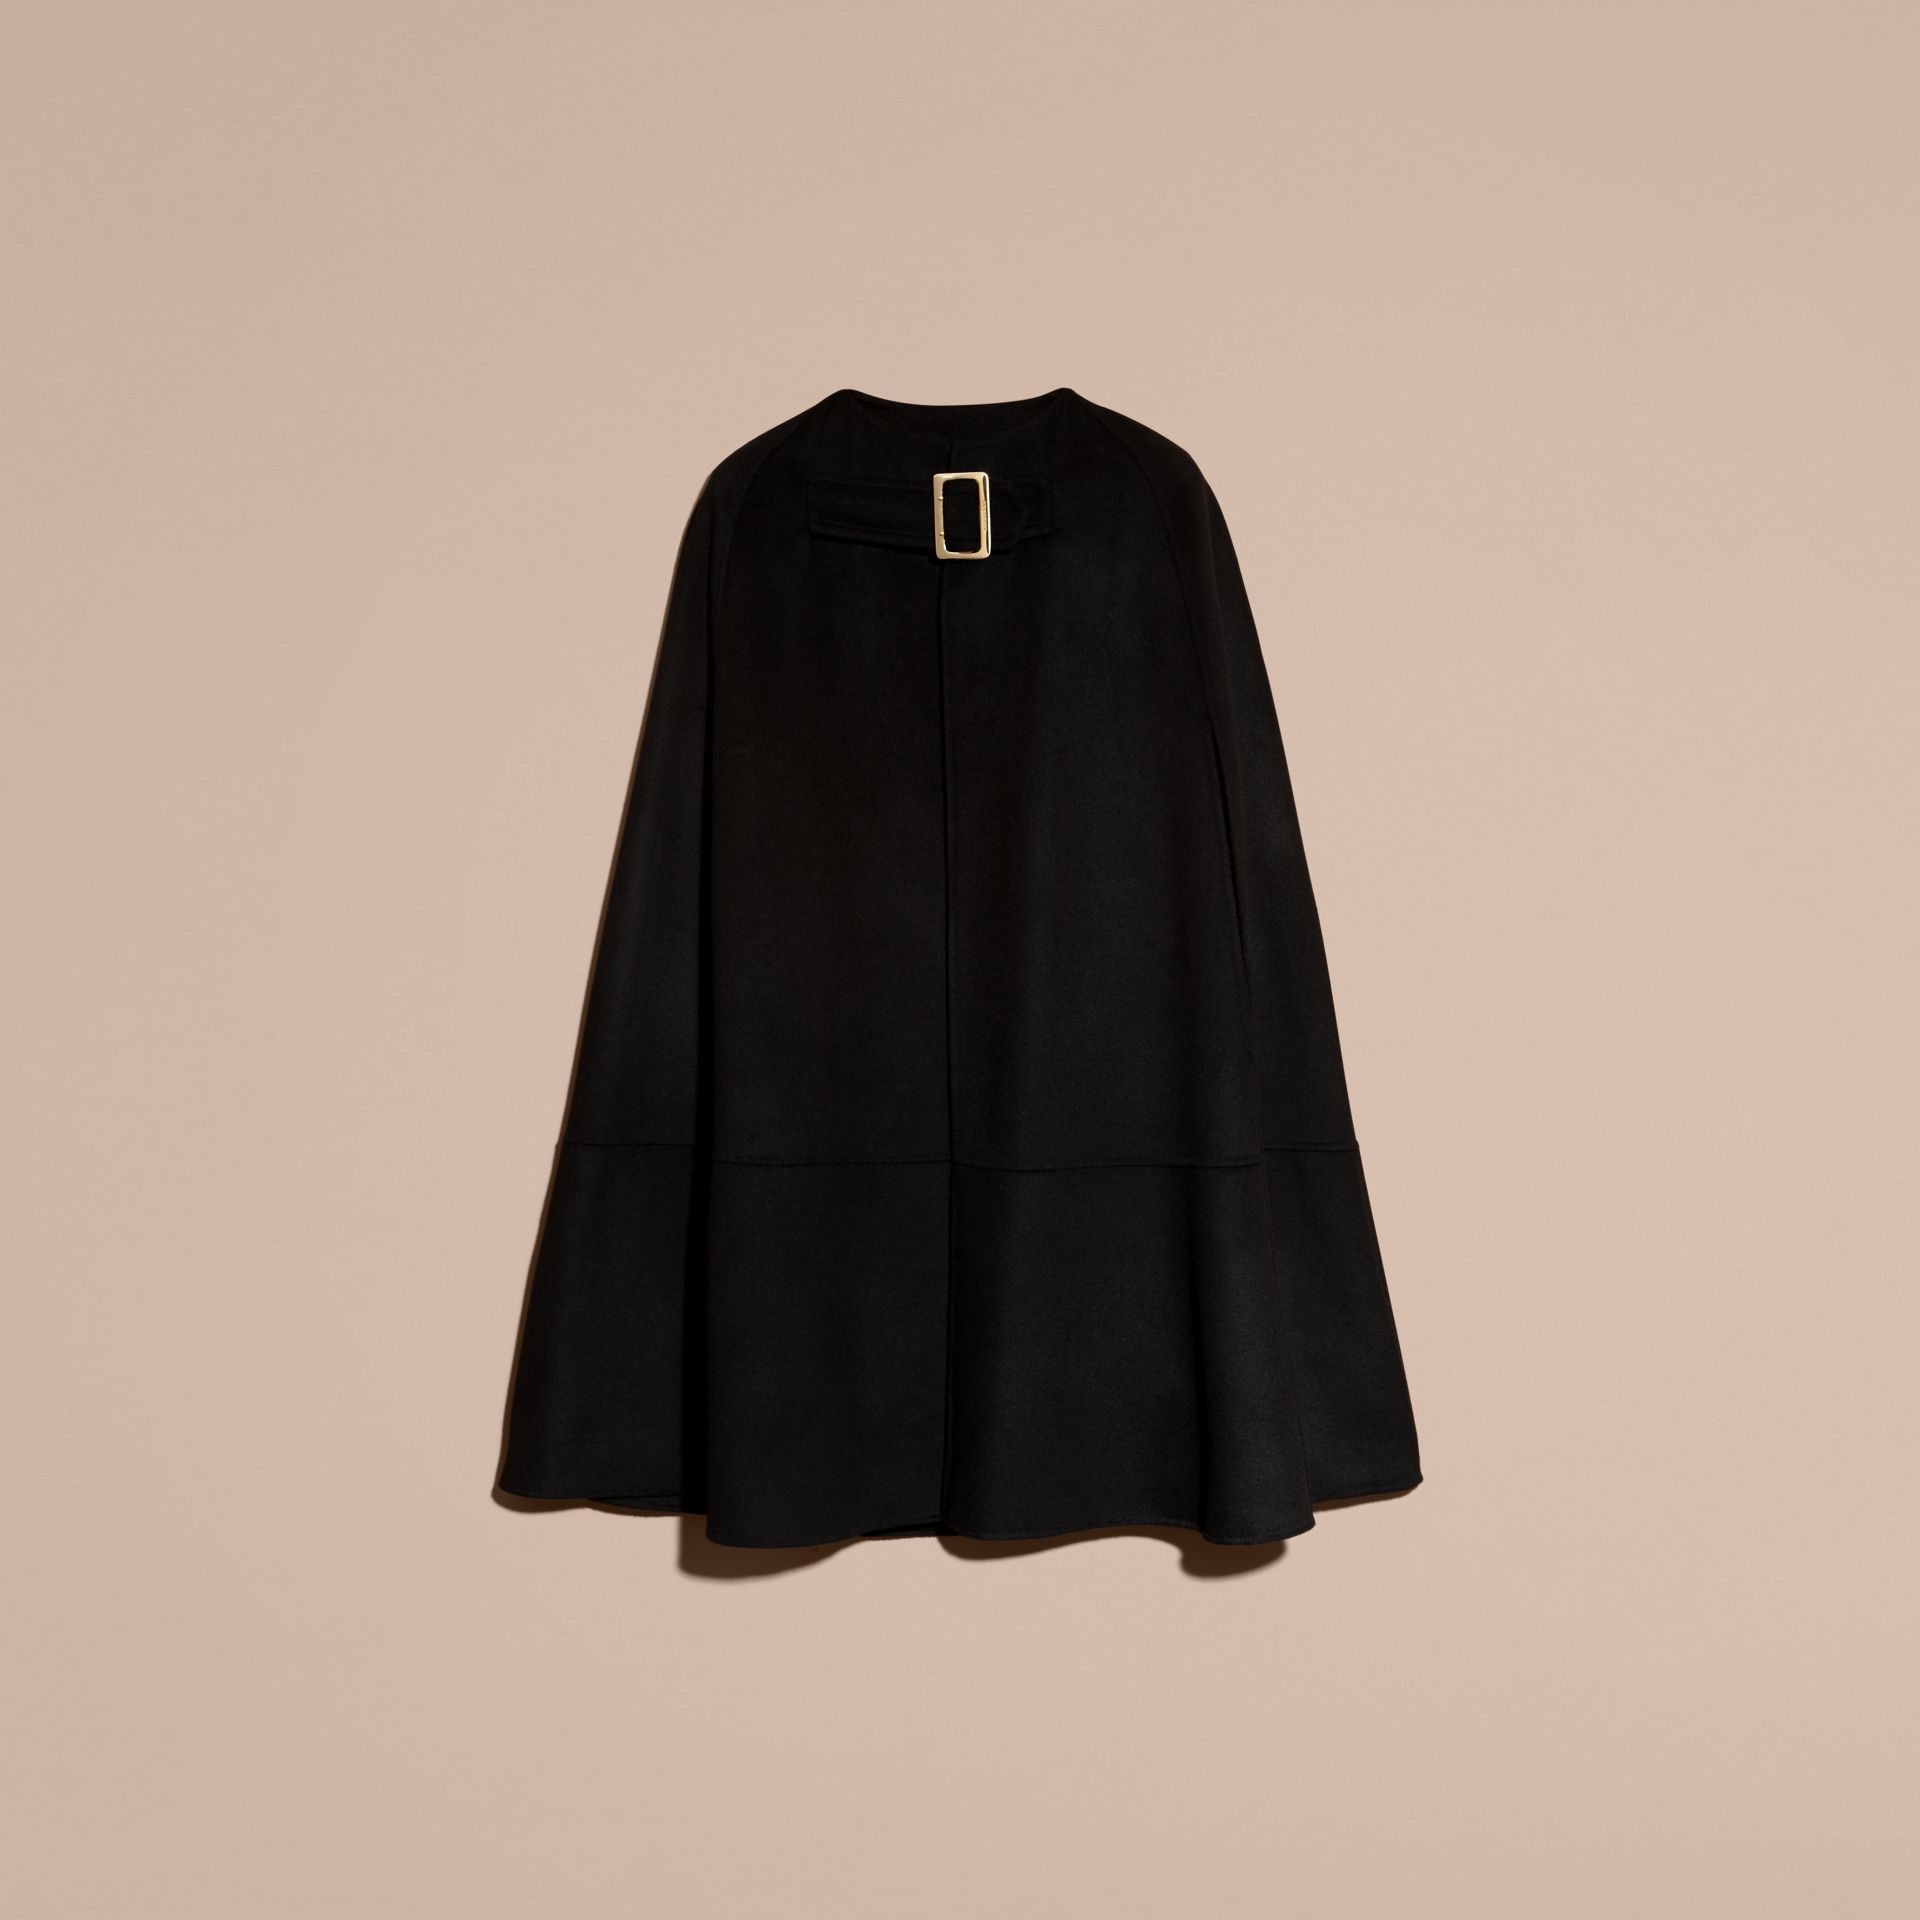 Black Panelled Cashmere Cape with Buckle Detail - gallery image 4